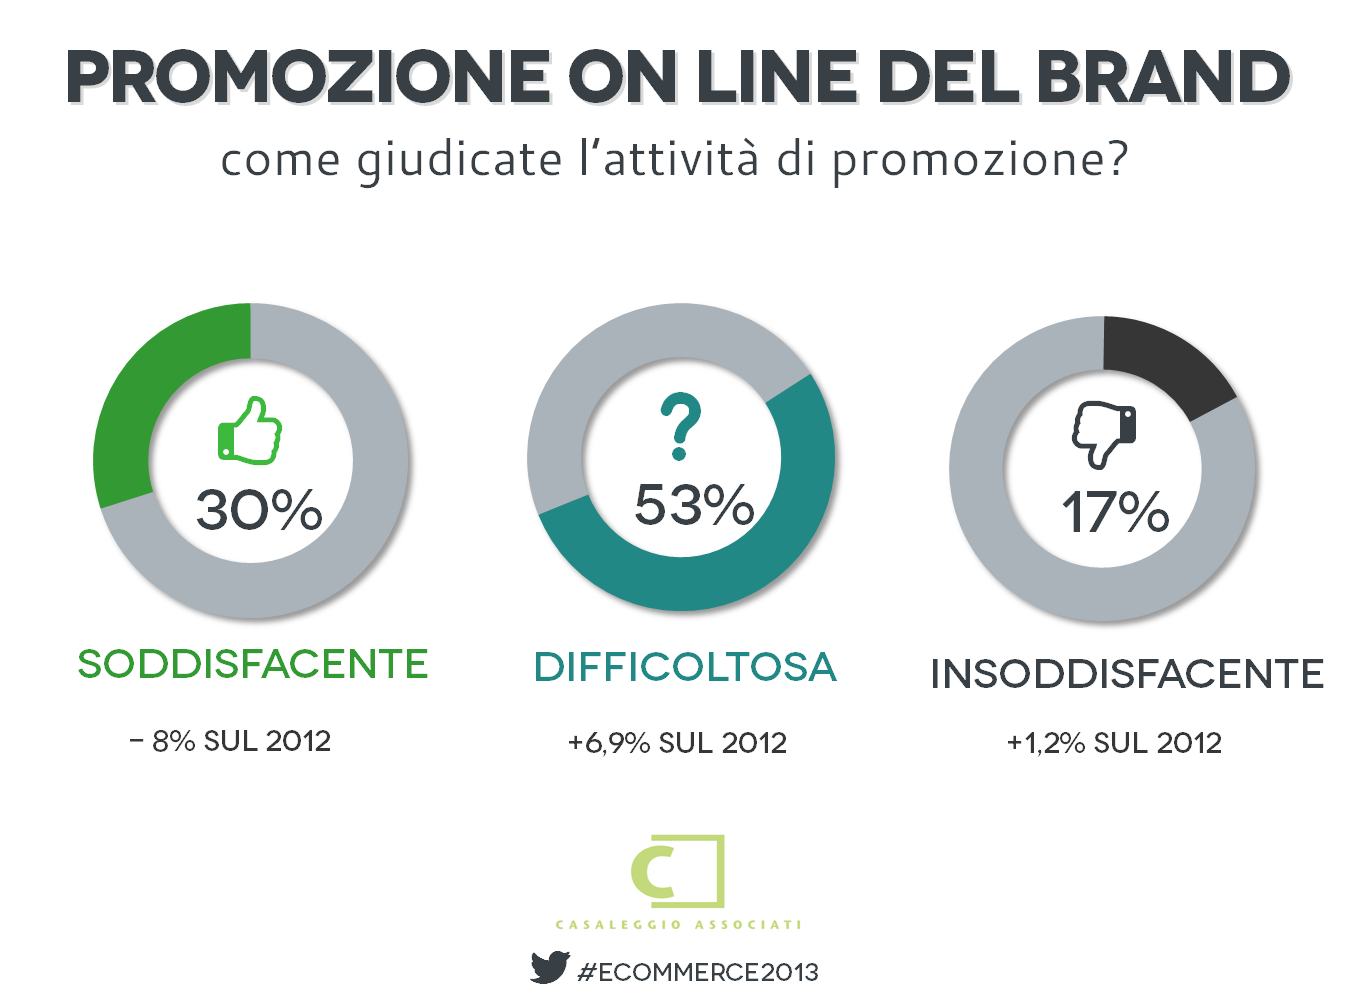 Promozione on line del brand - E-commerce in Italia 2013 #ecommerce2013